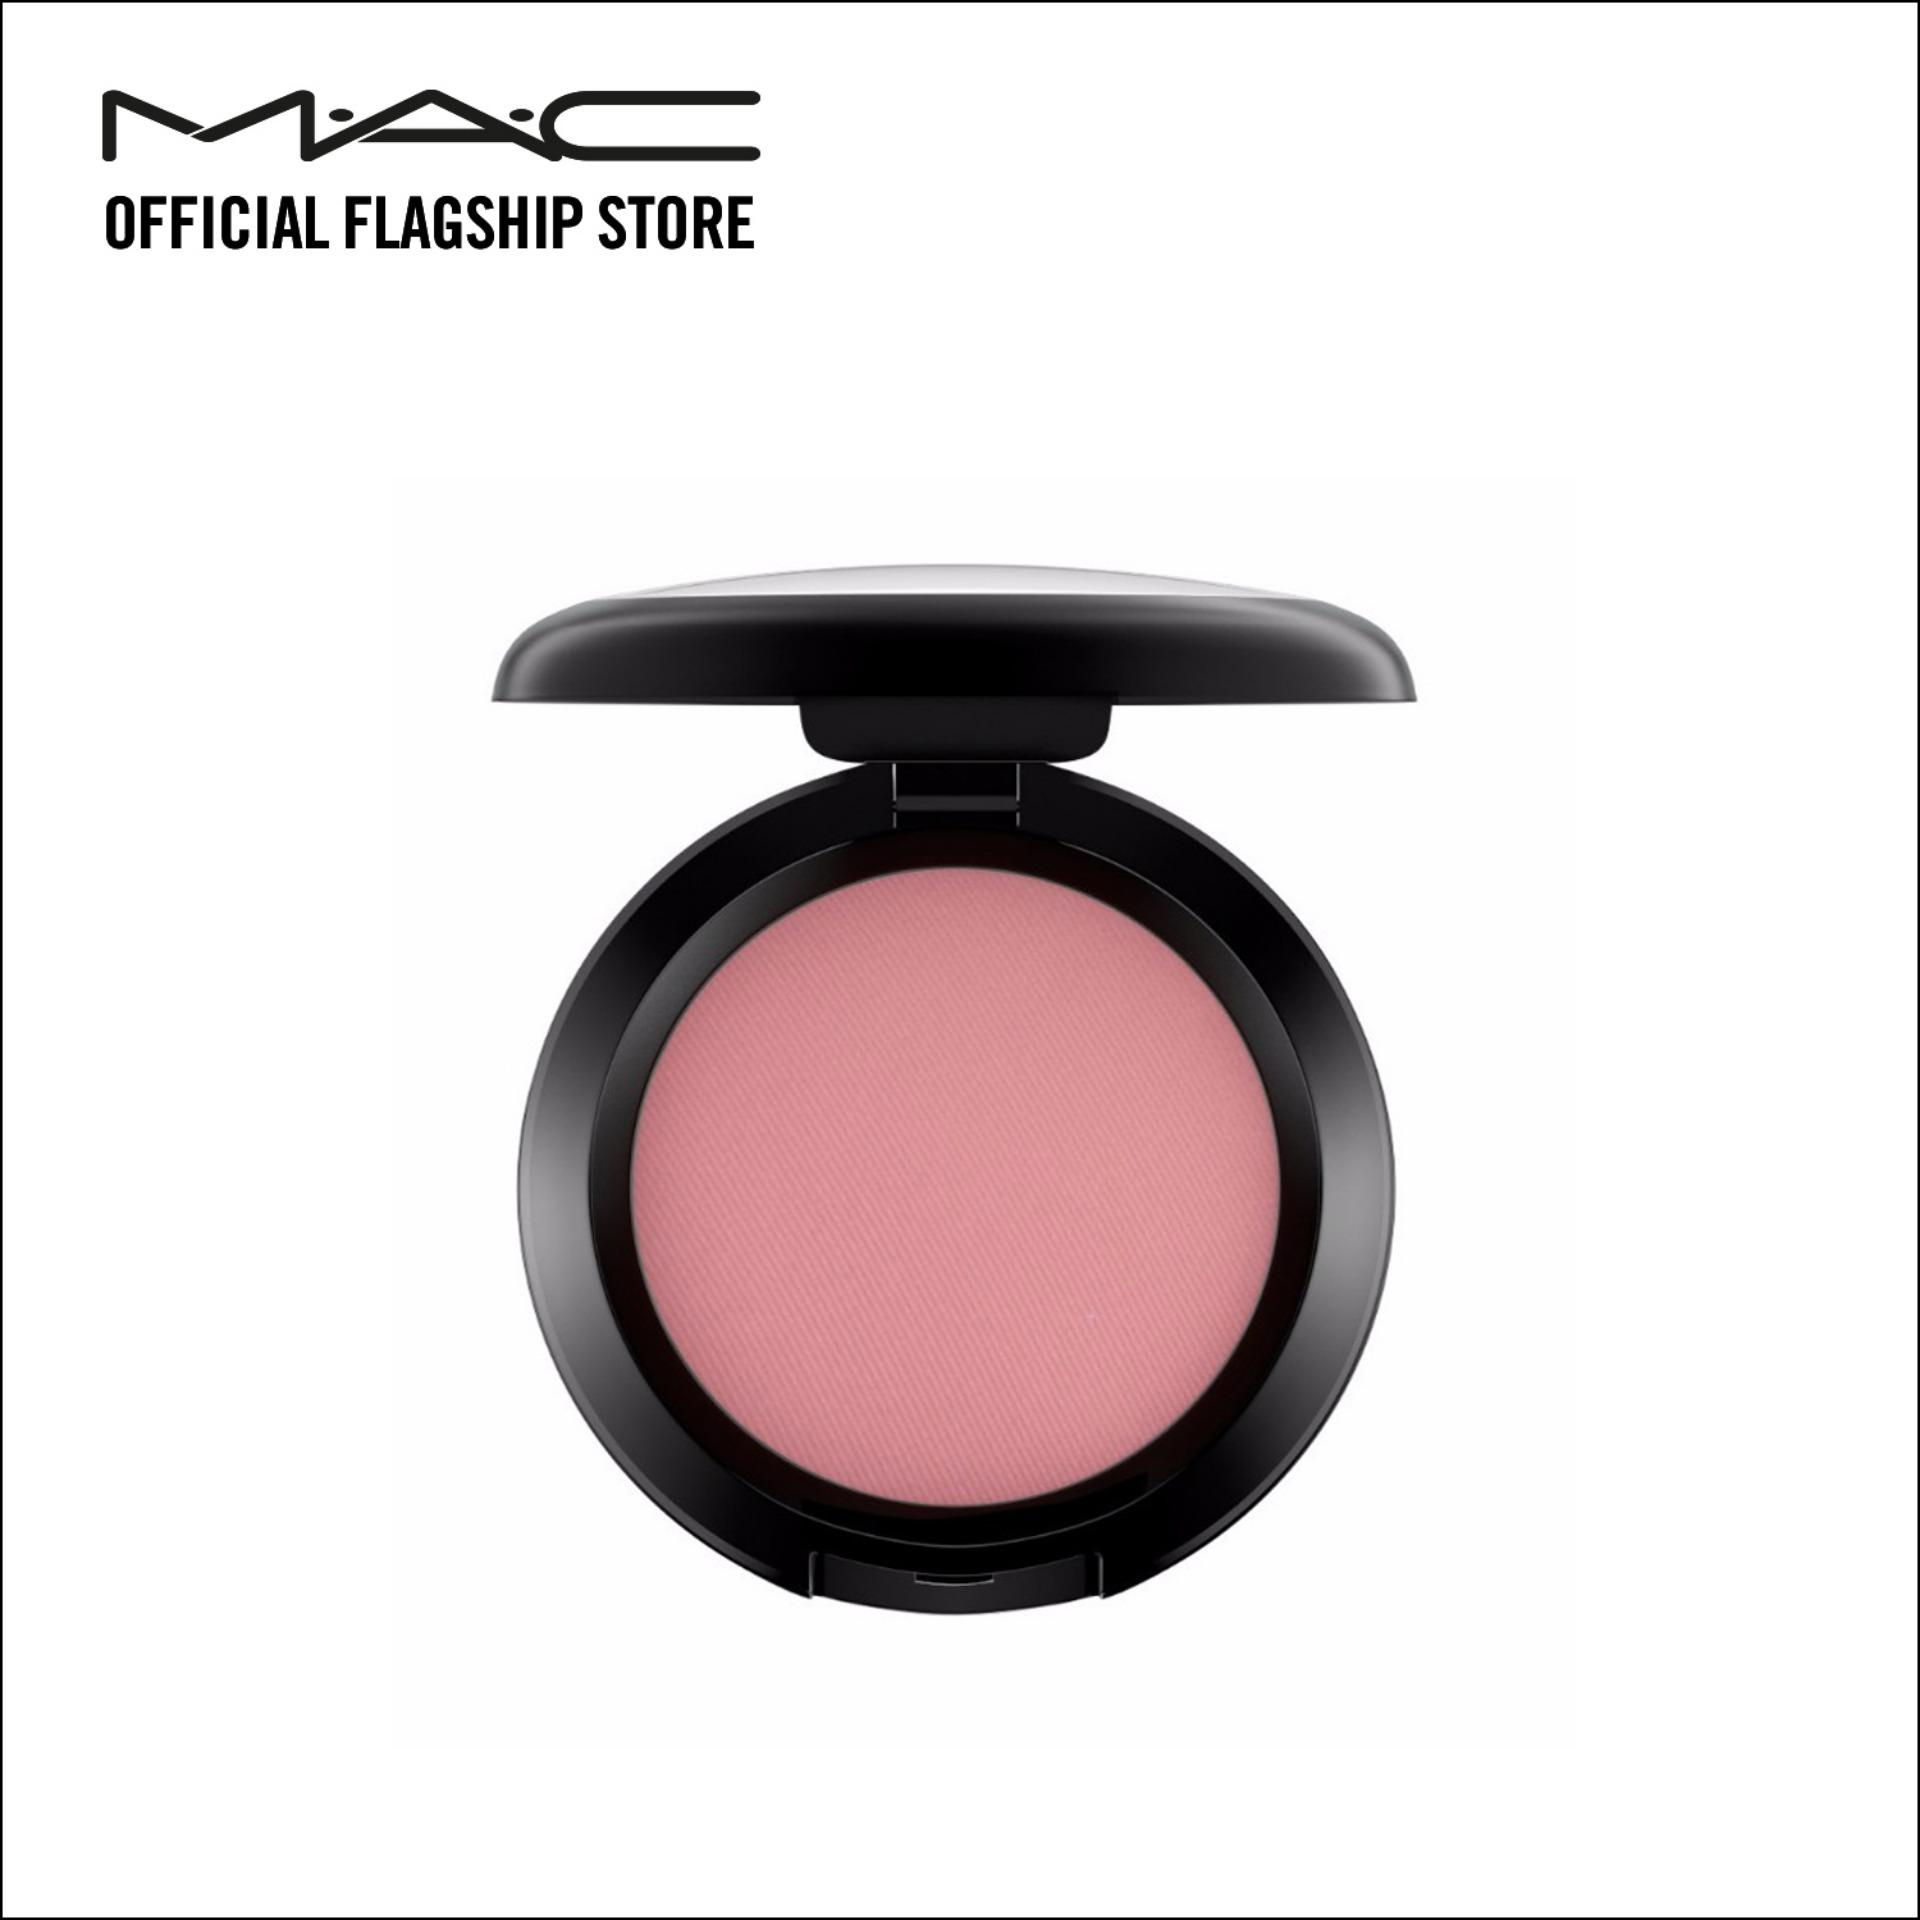 Phấn má hồng MAC Powder Blush 6g